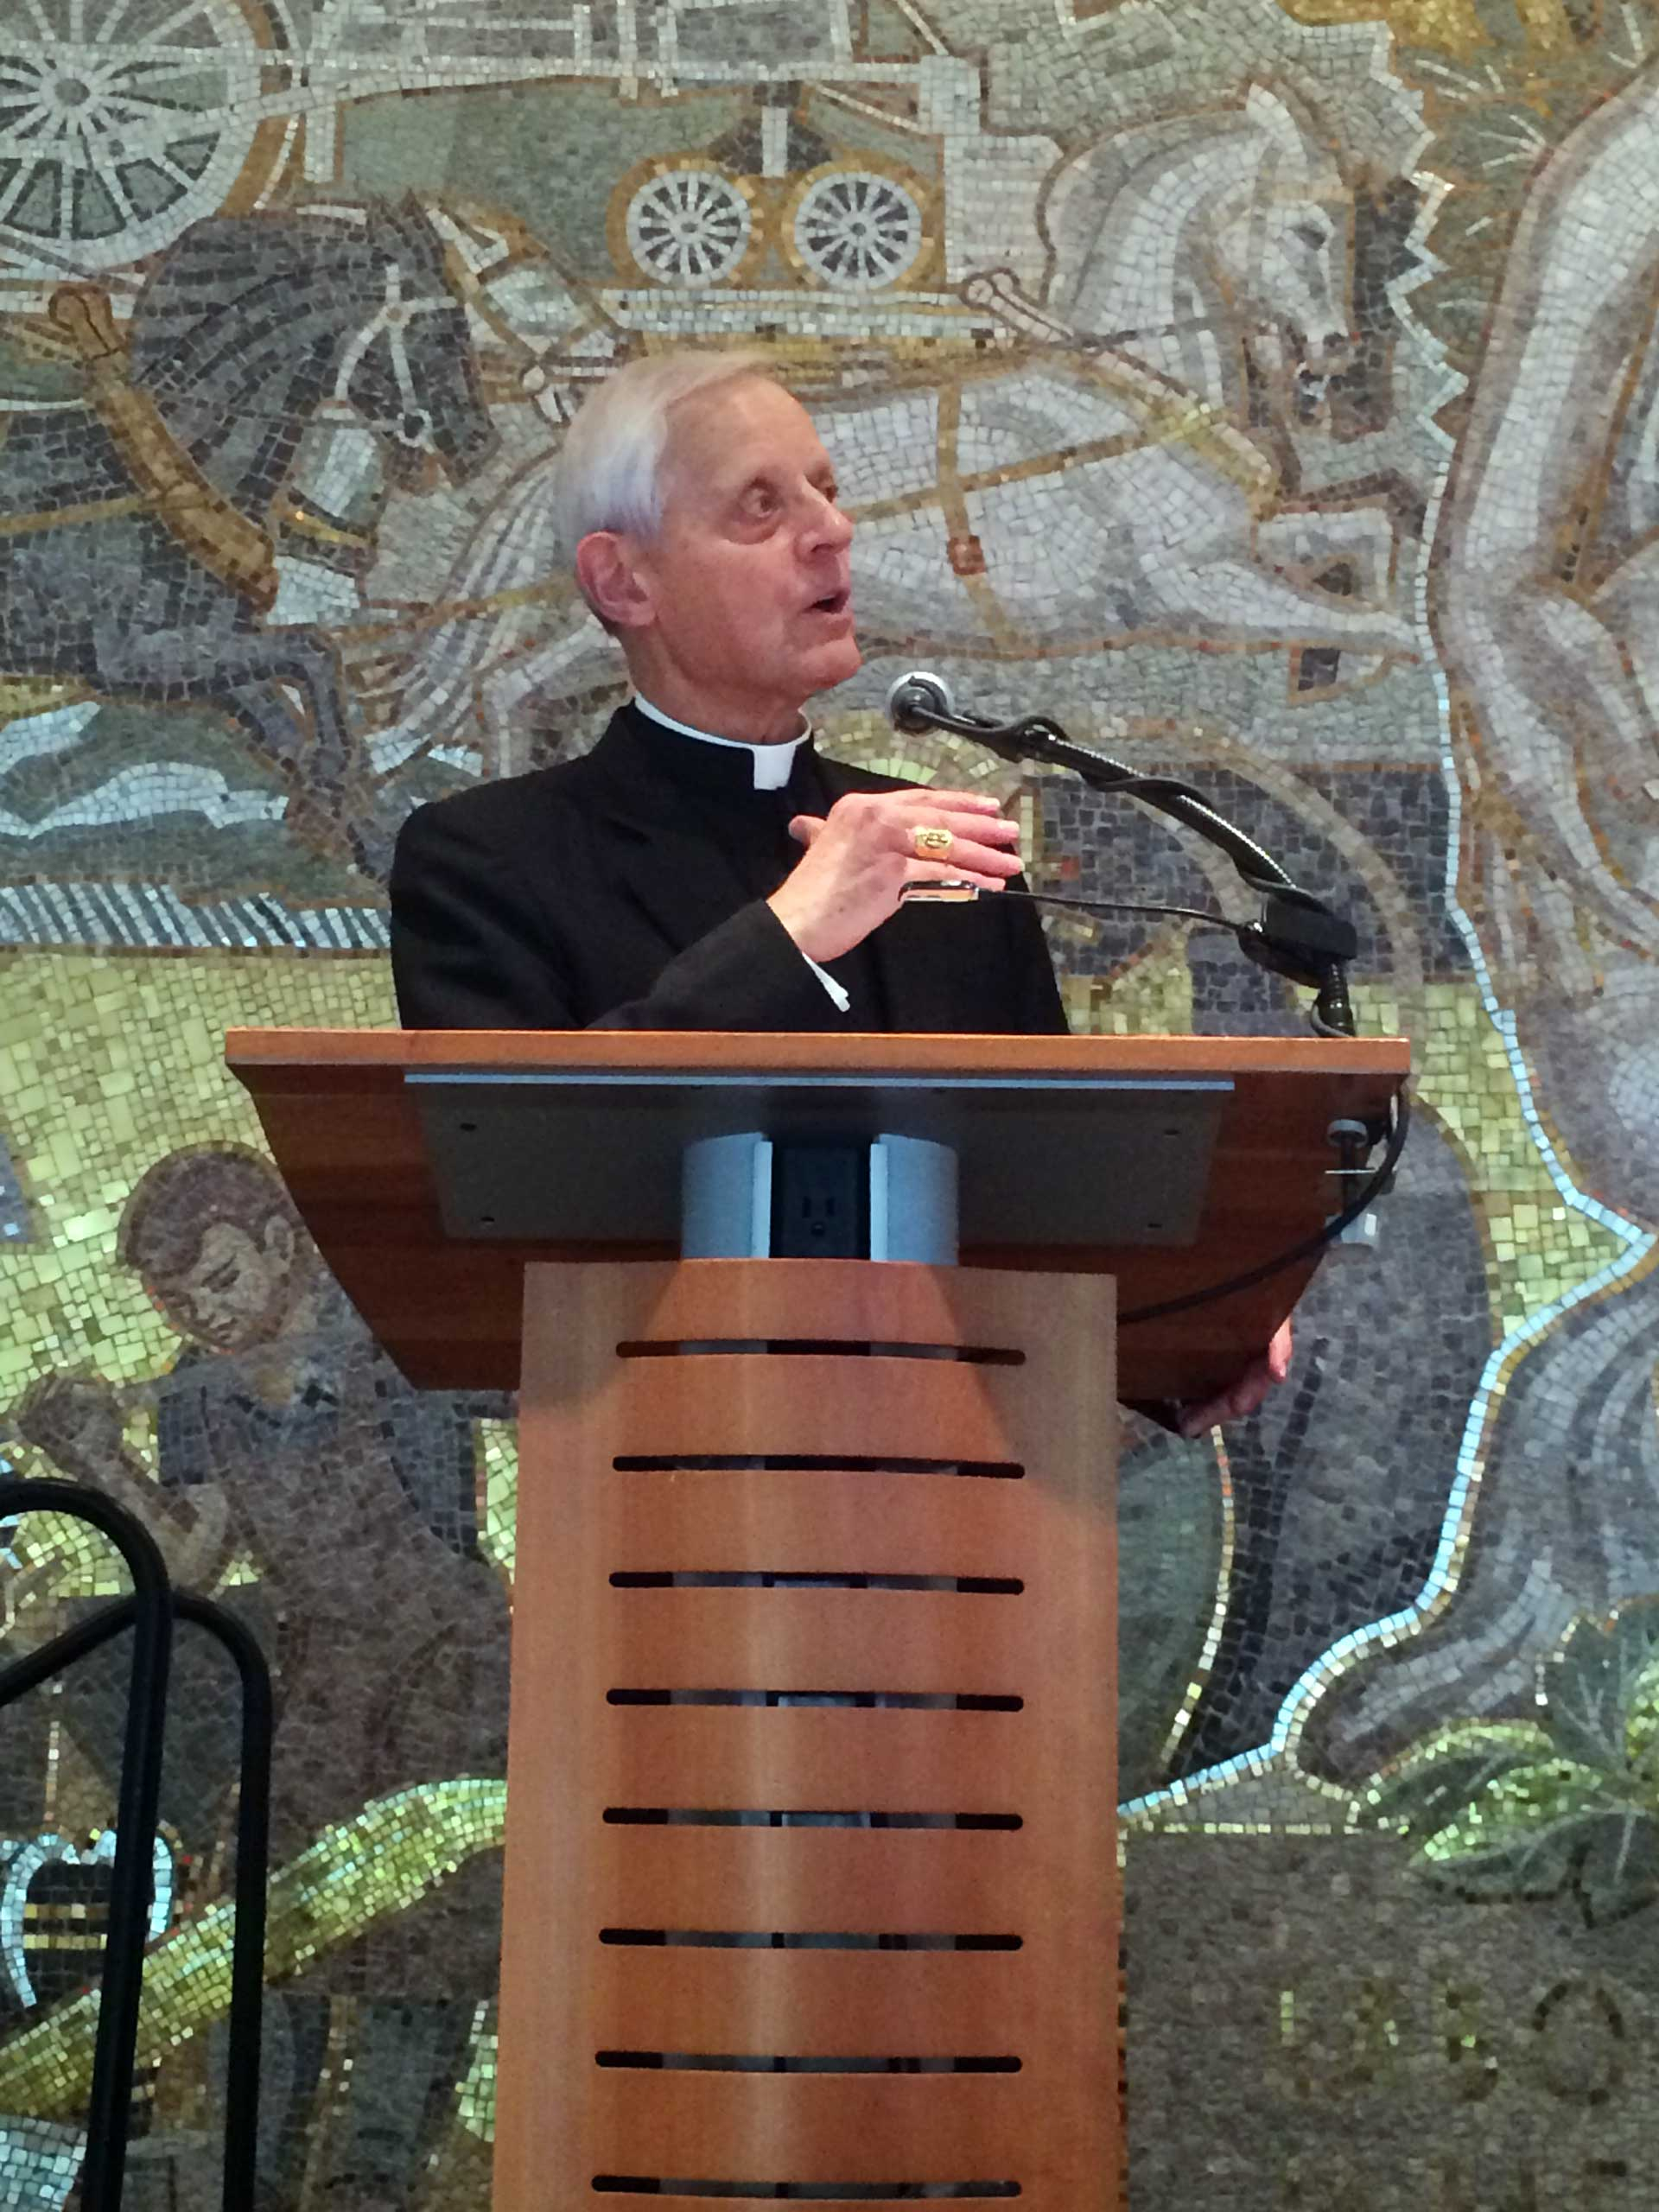 Cardinal Donald Wuerl speaks at an AFL-CIO event in Washington on June 15, 2015.